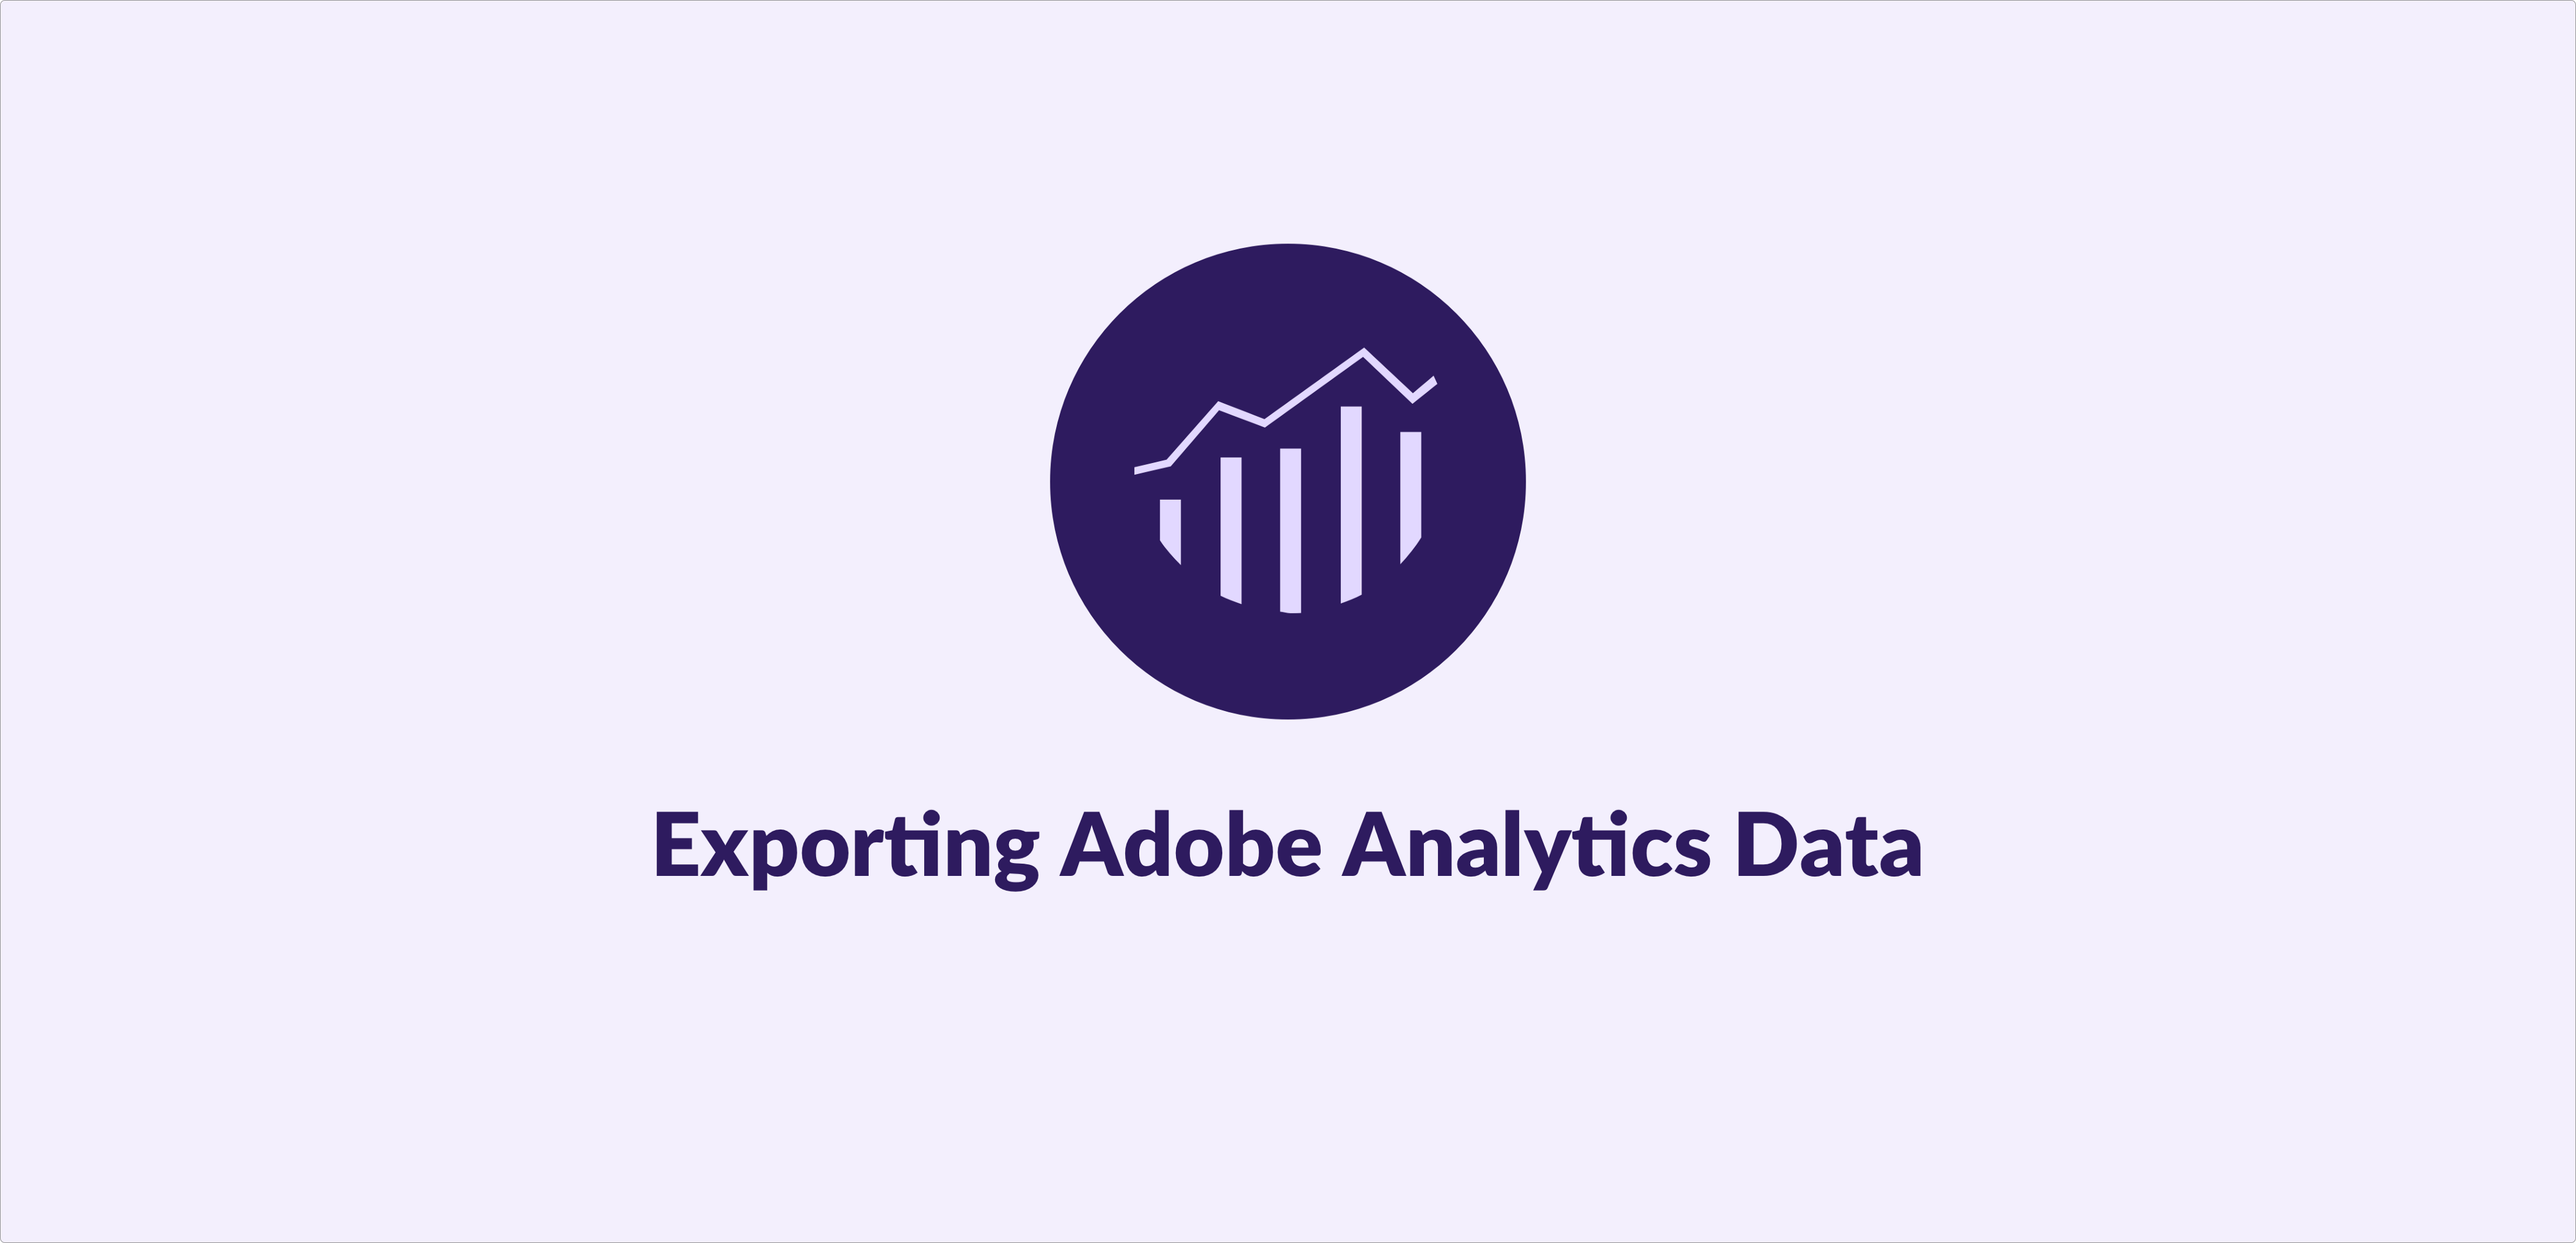 4 Ways To Get Your Adobe Analytics Data Into Tableau, Power